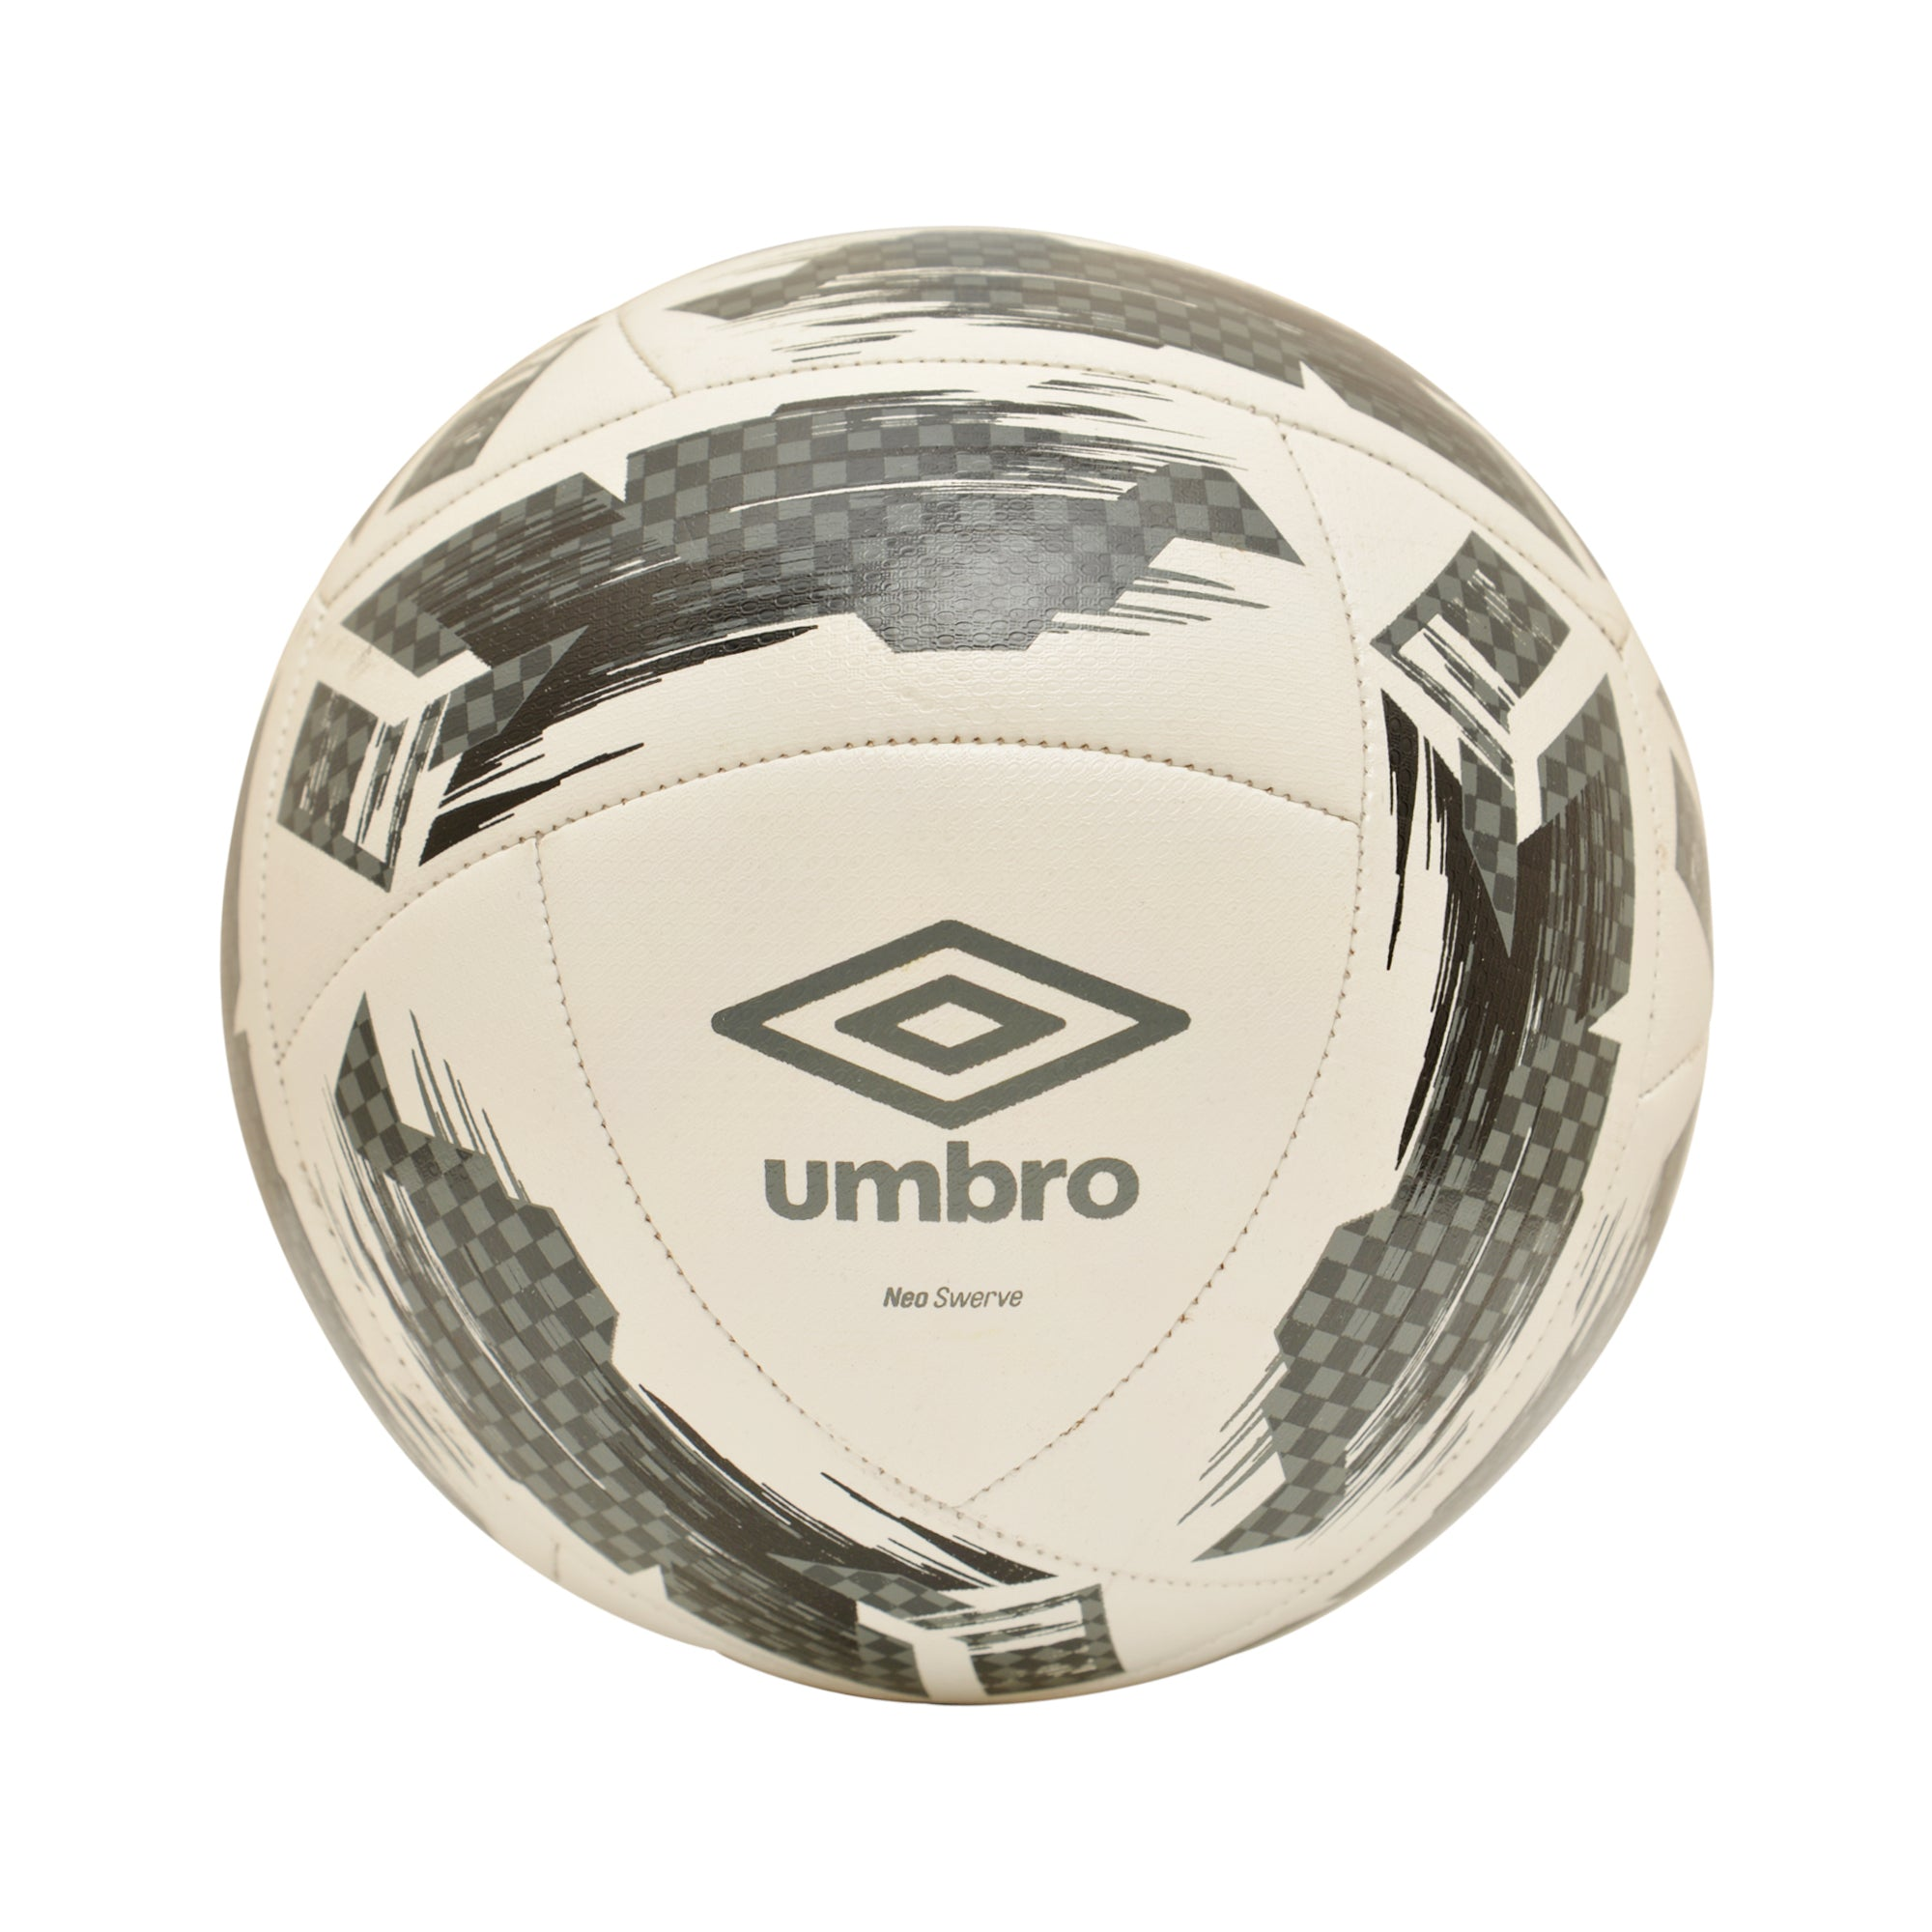 Umbro Neo Swerve - White/Black